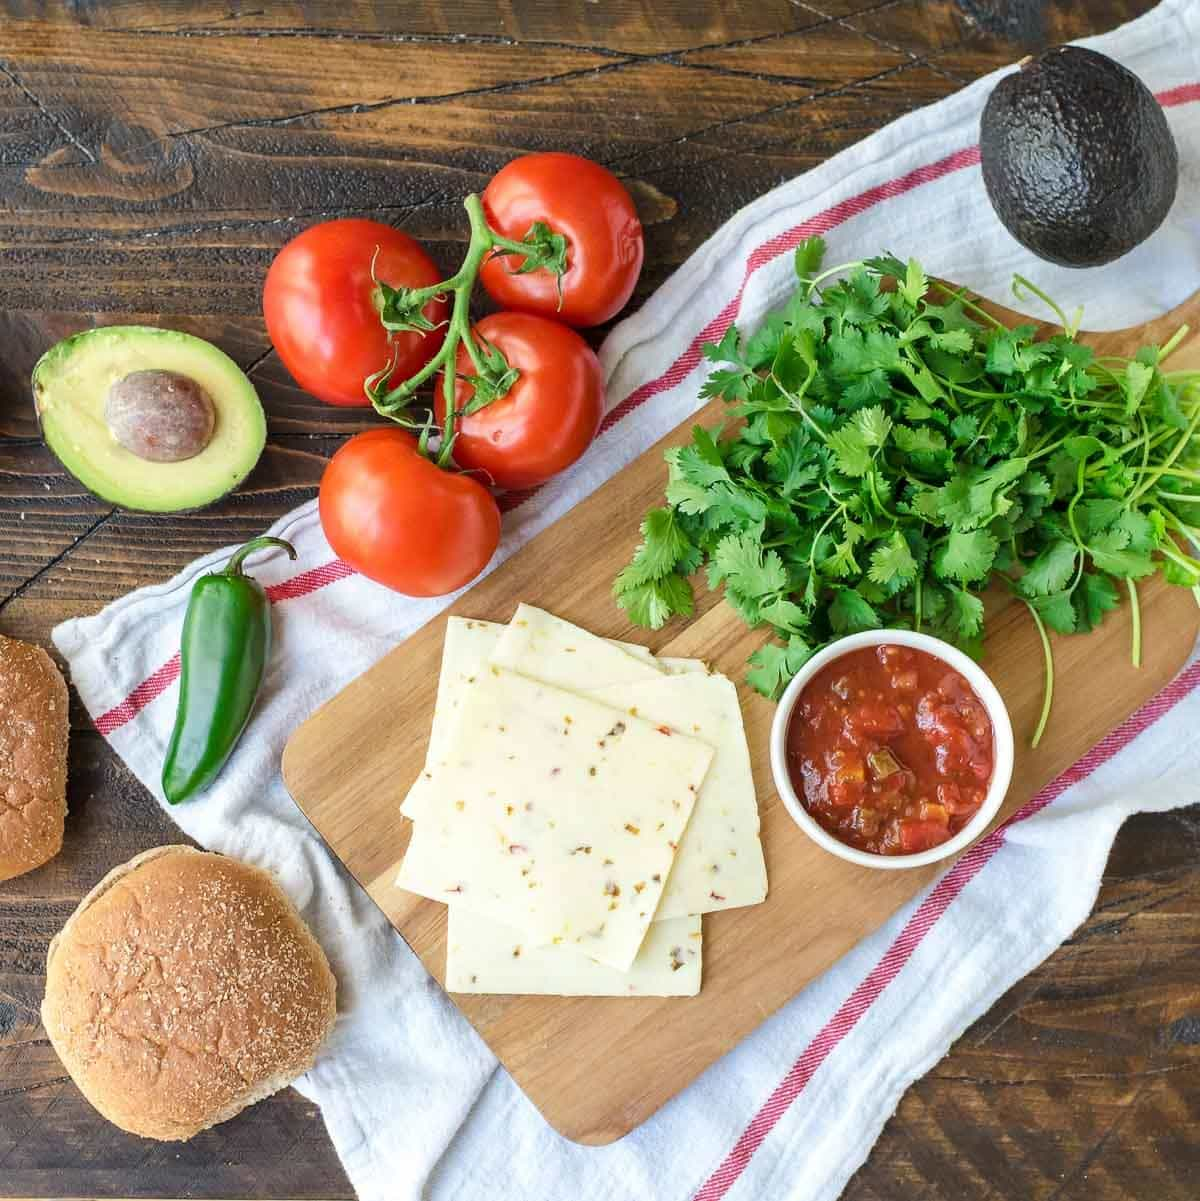 Green Chile Chicken Burgers with avocado and cheese— so MOIST and juicy! An easy, healthy recipe our whole family loves. @wellplated